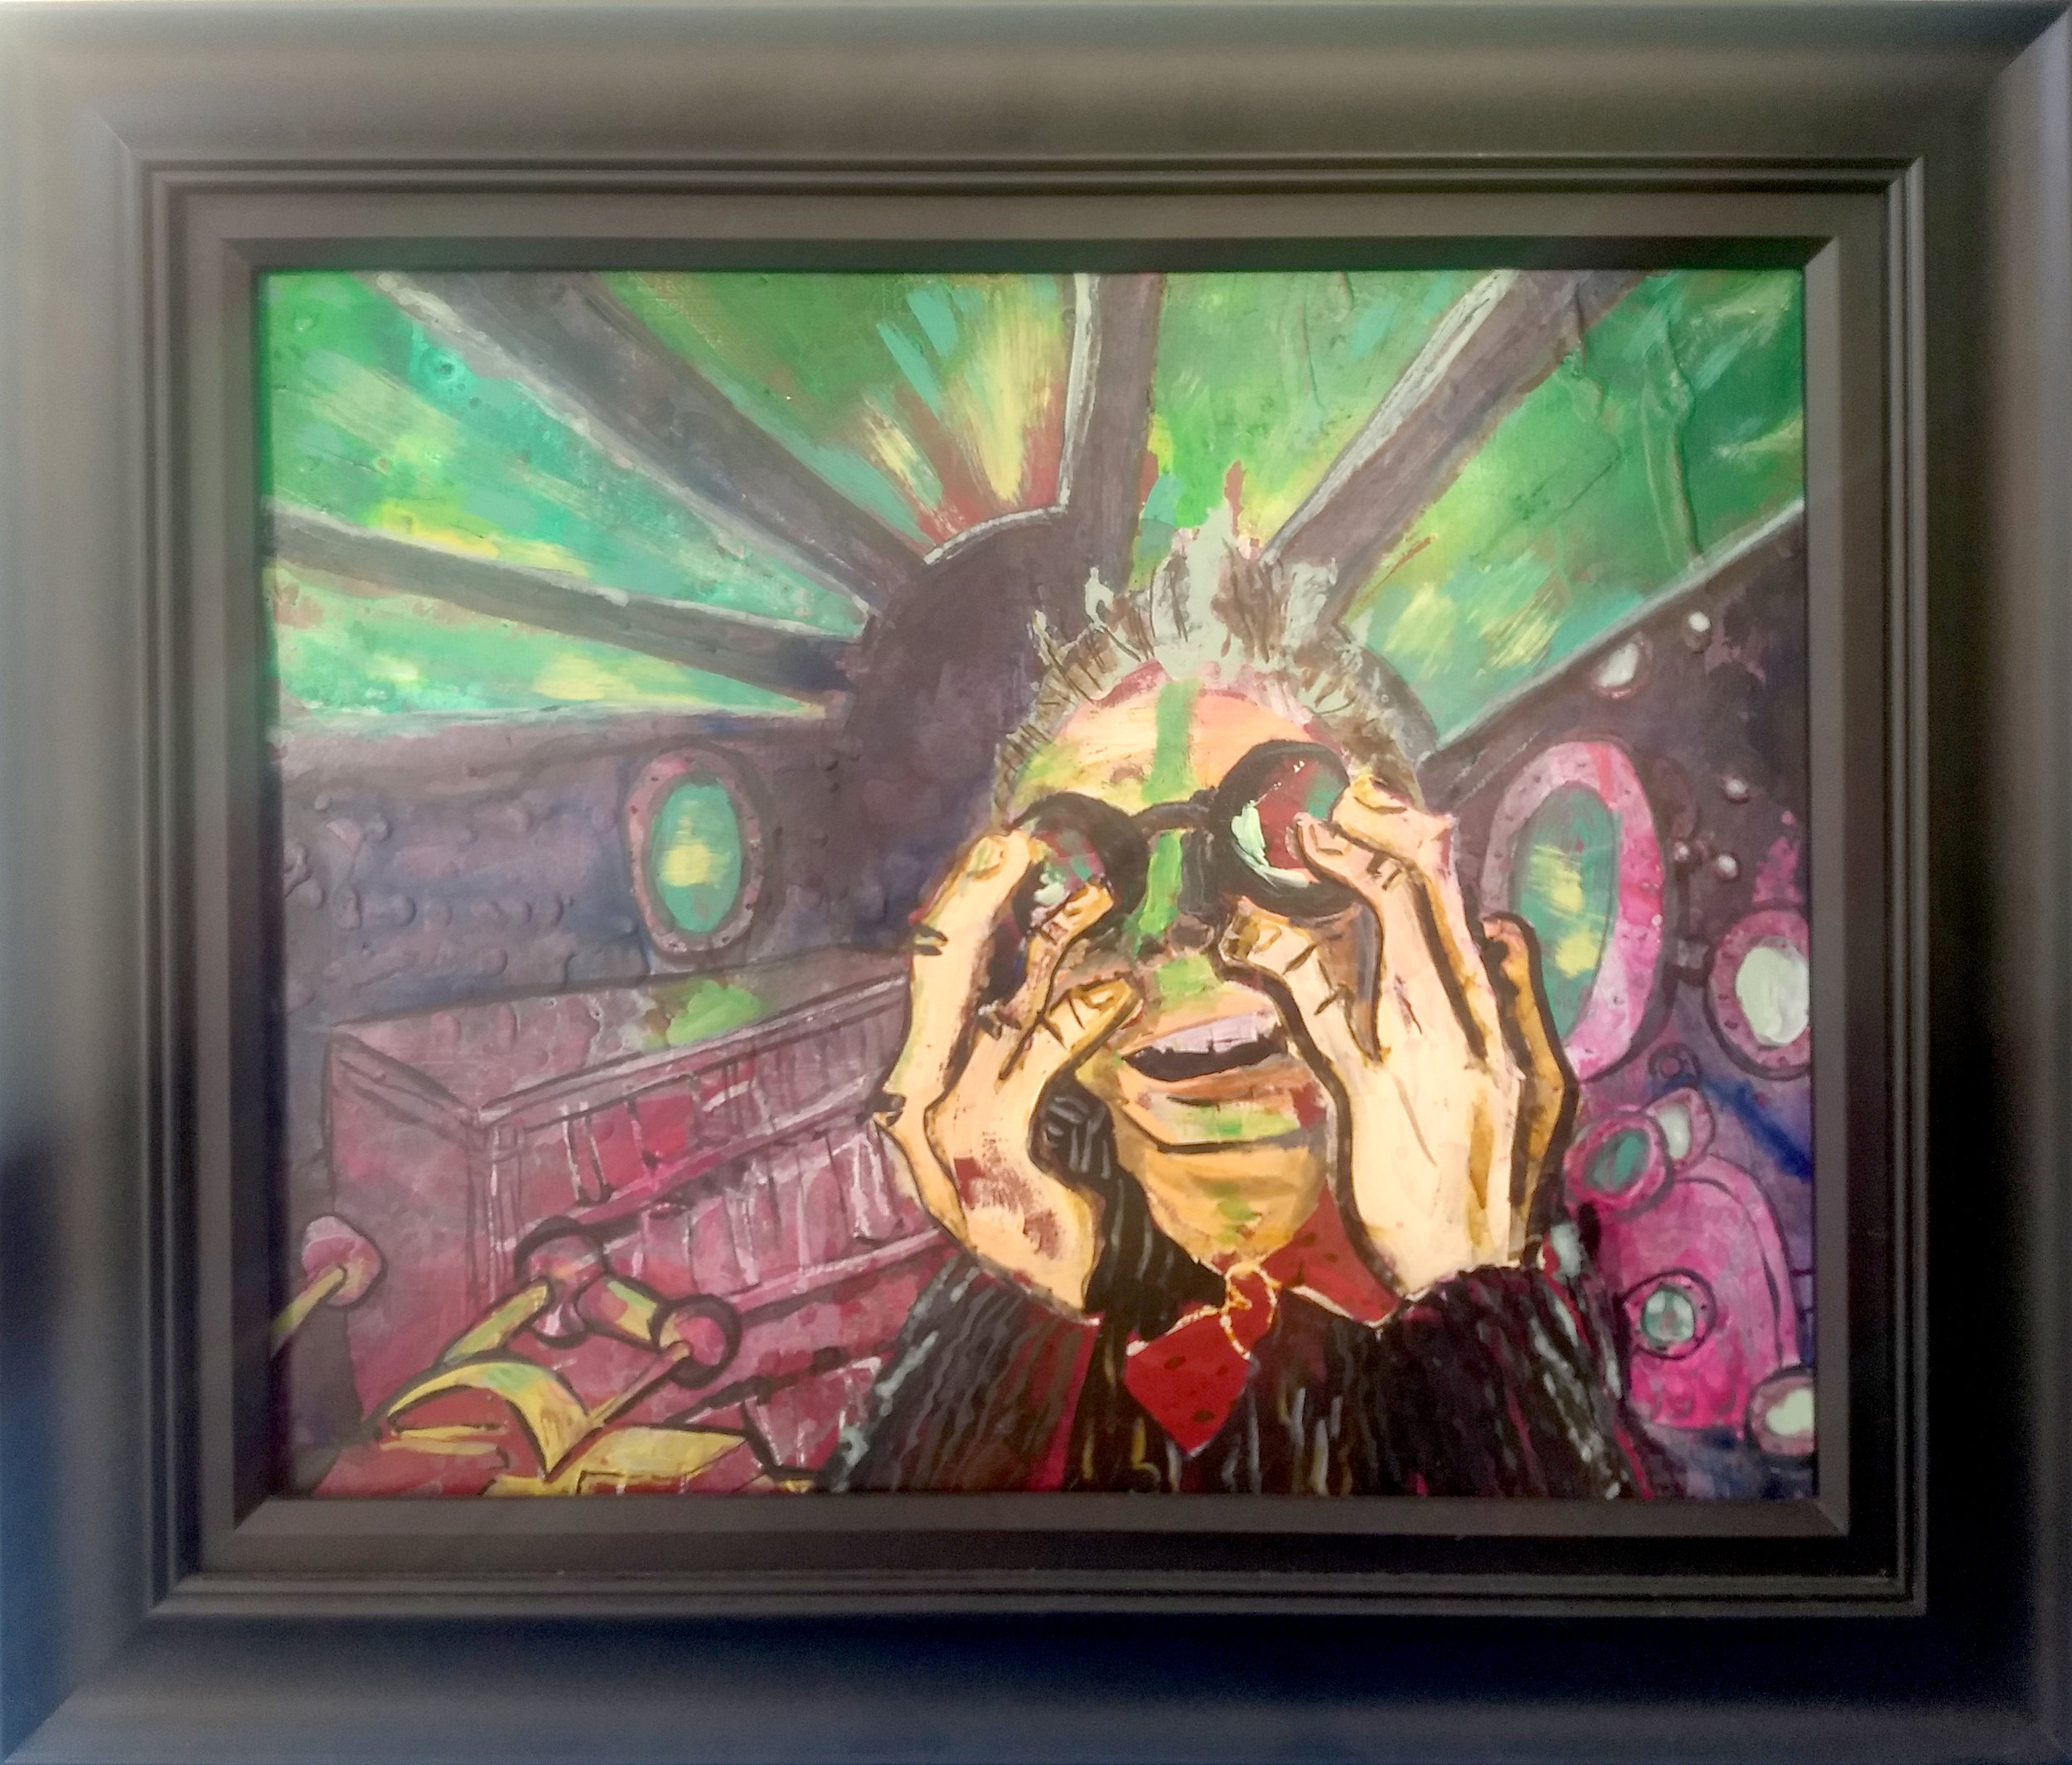 Psychonaut-in-his-ethership-witnesses-ecstatic-vision.jpg